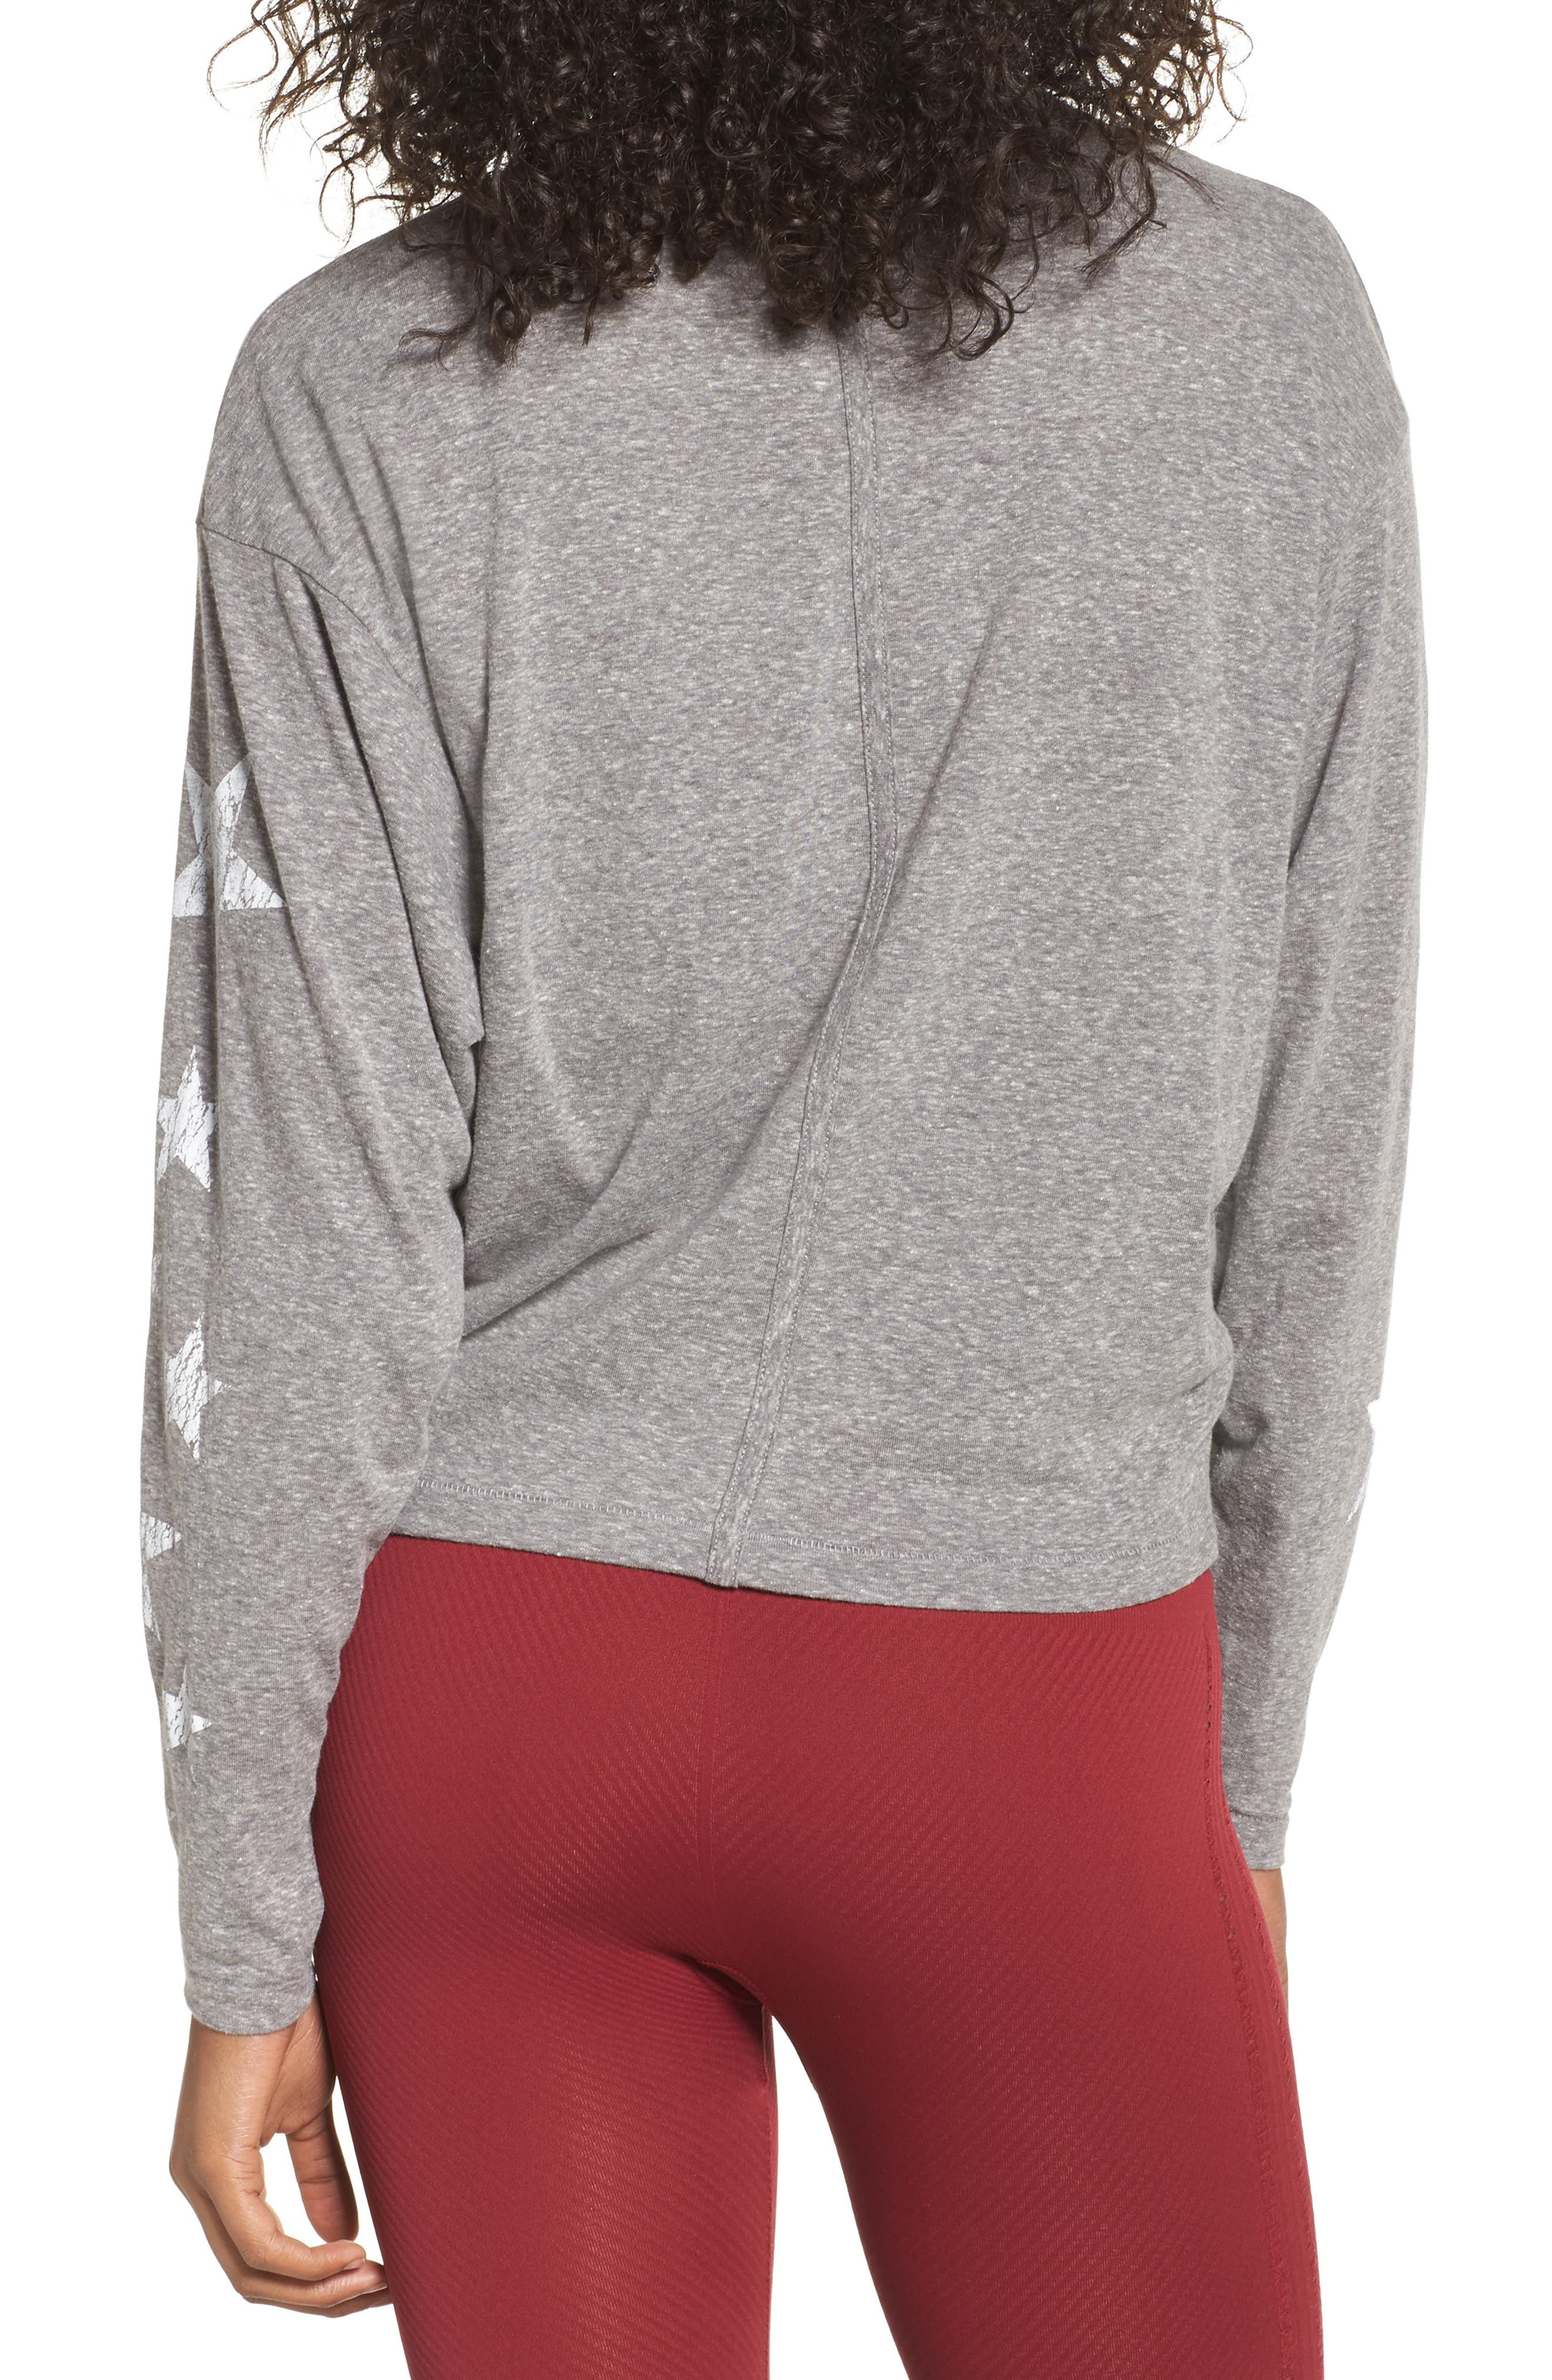 Free People Melrose Star Graphic Top,                             Alternate thumbnail 5, color,